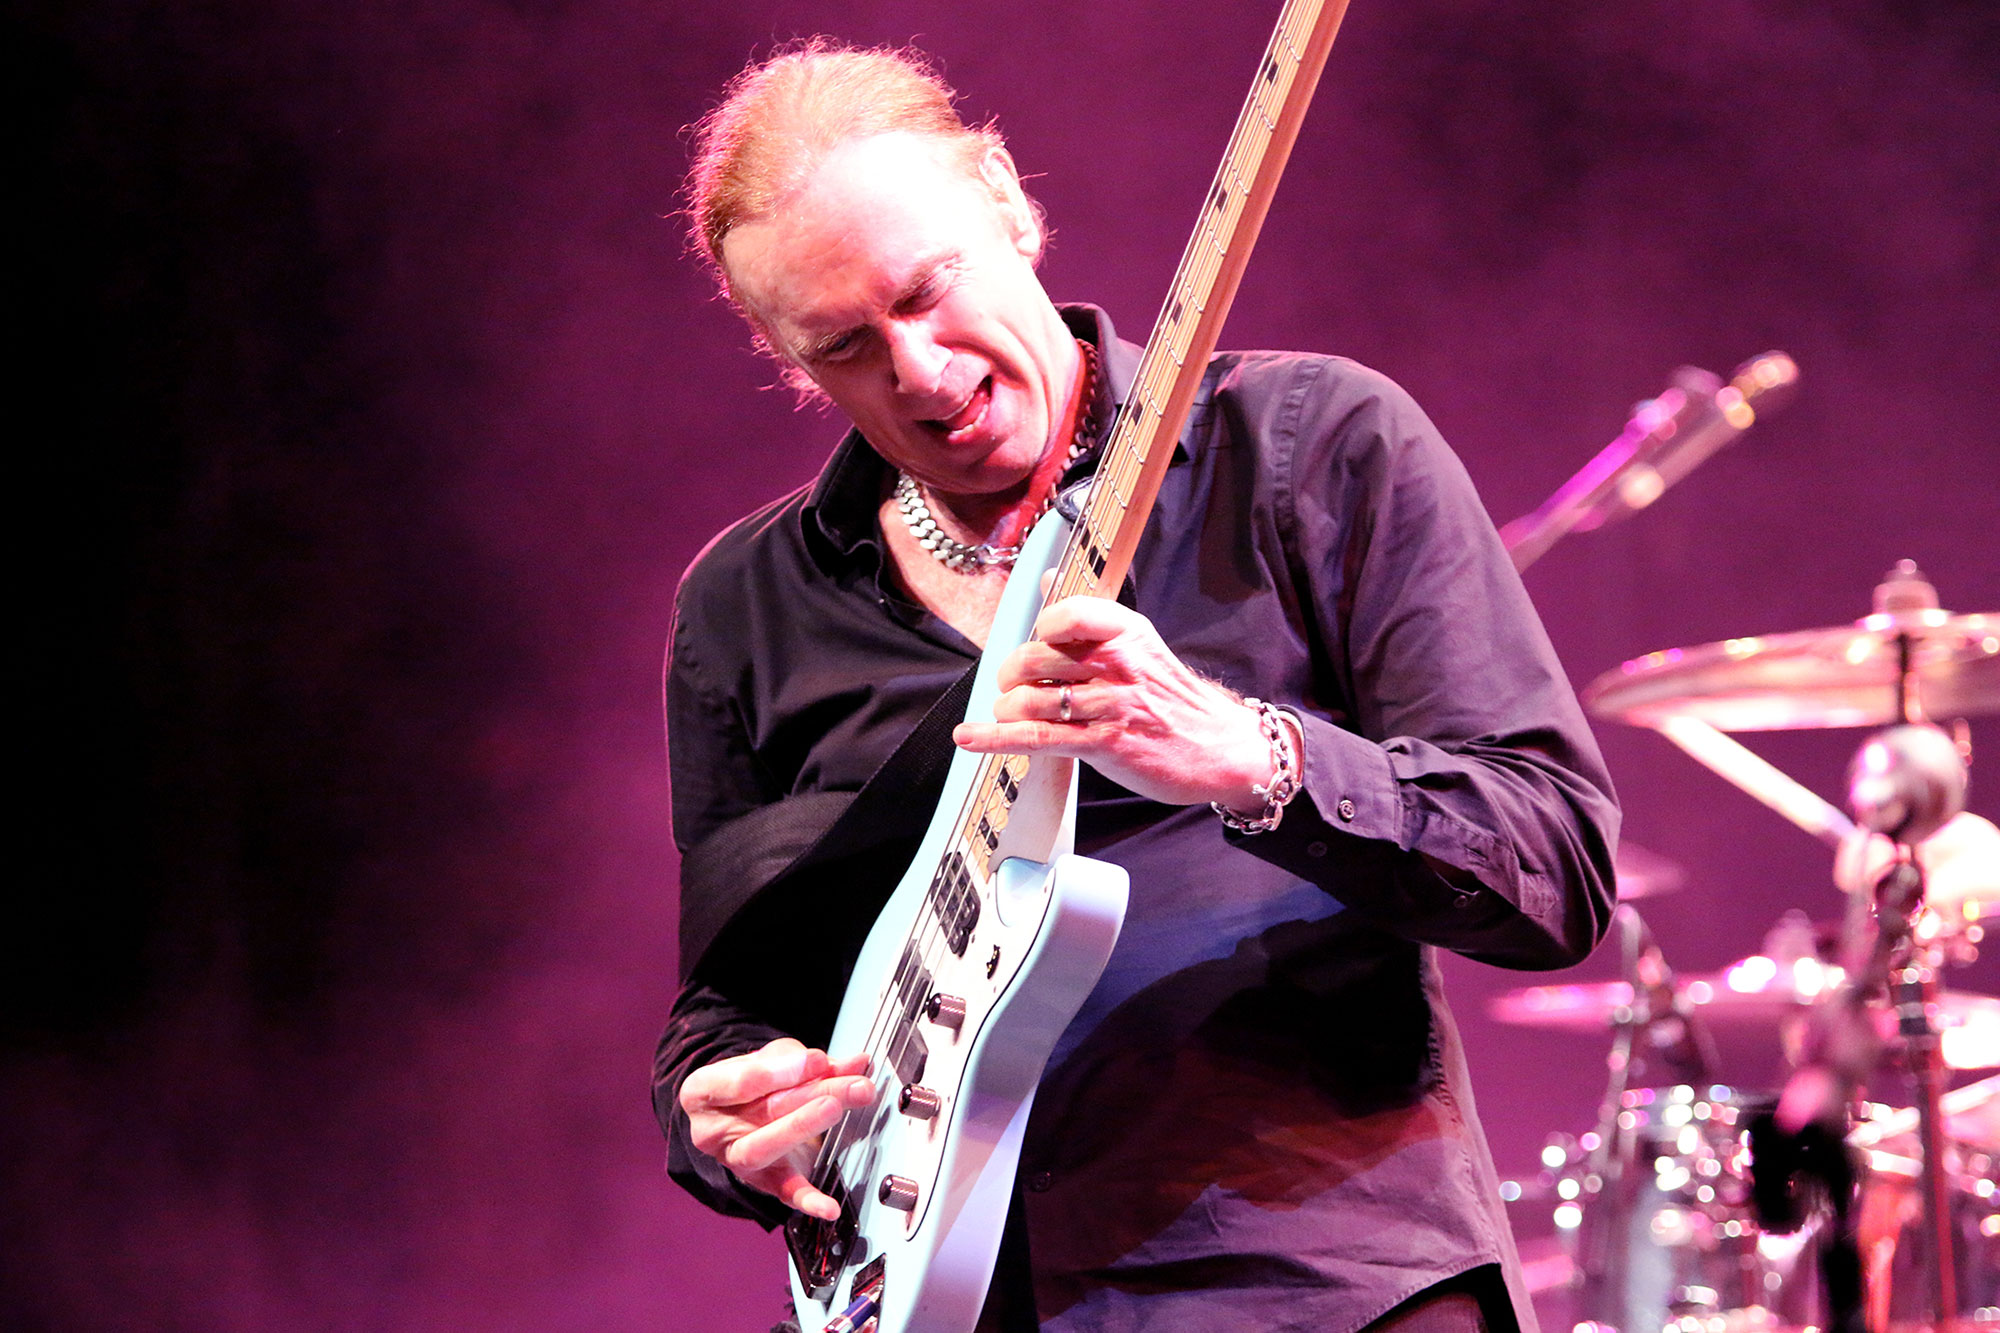 Concert Photography - Billy Sheehan